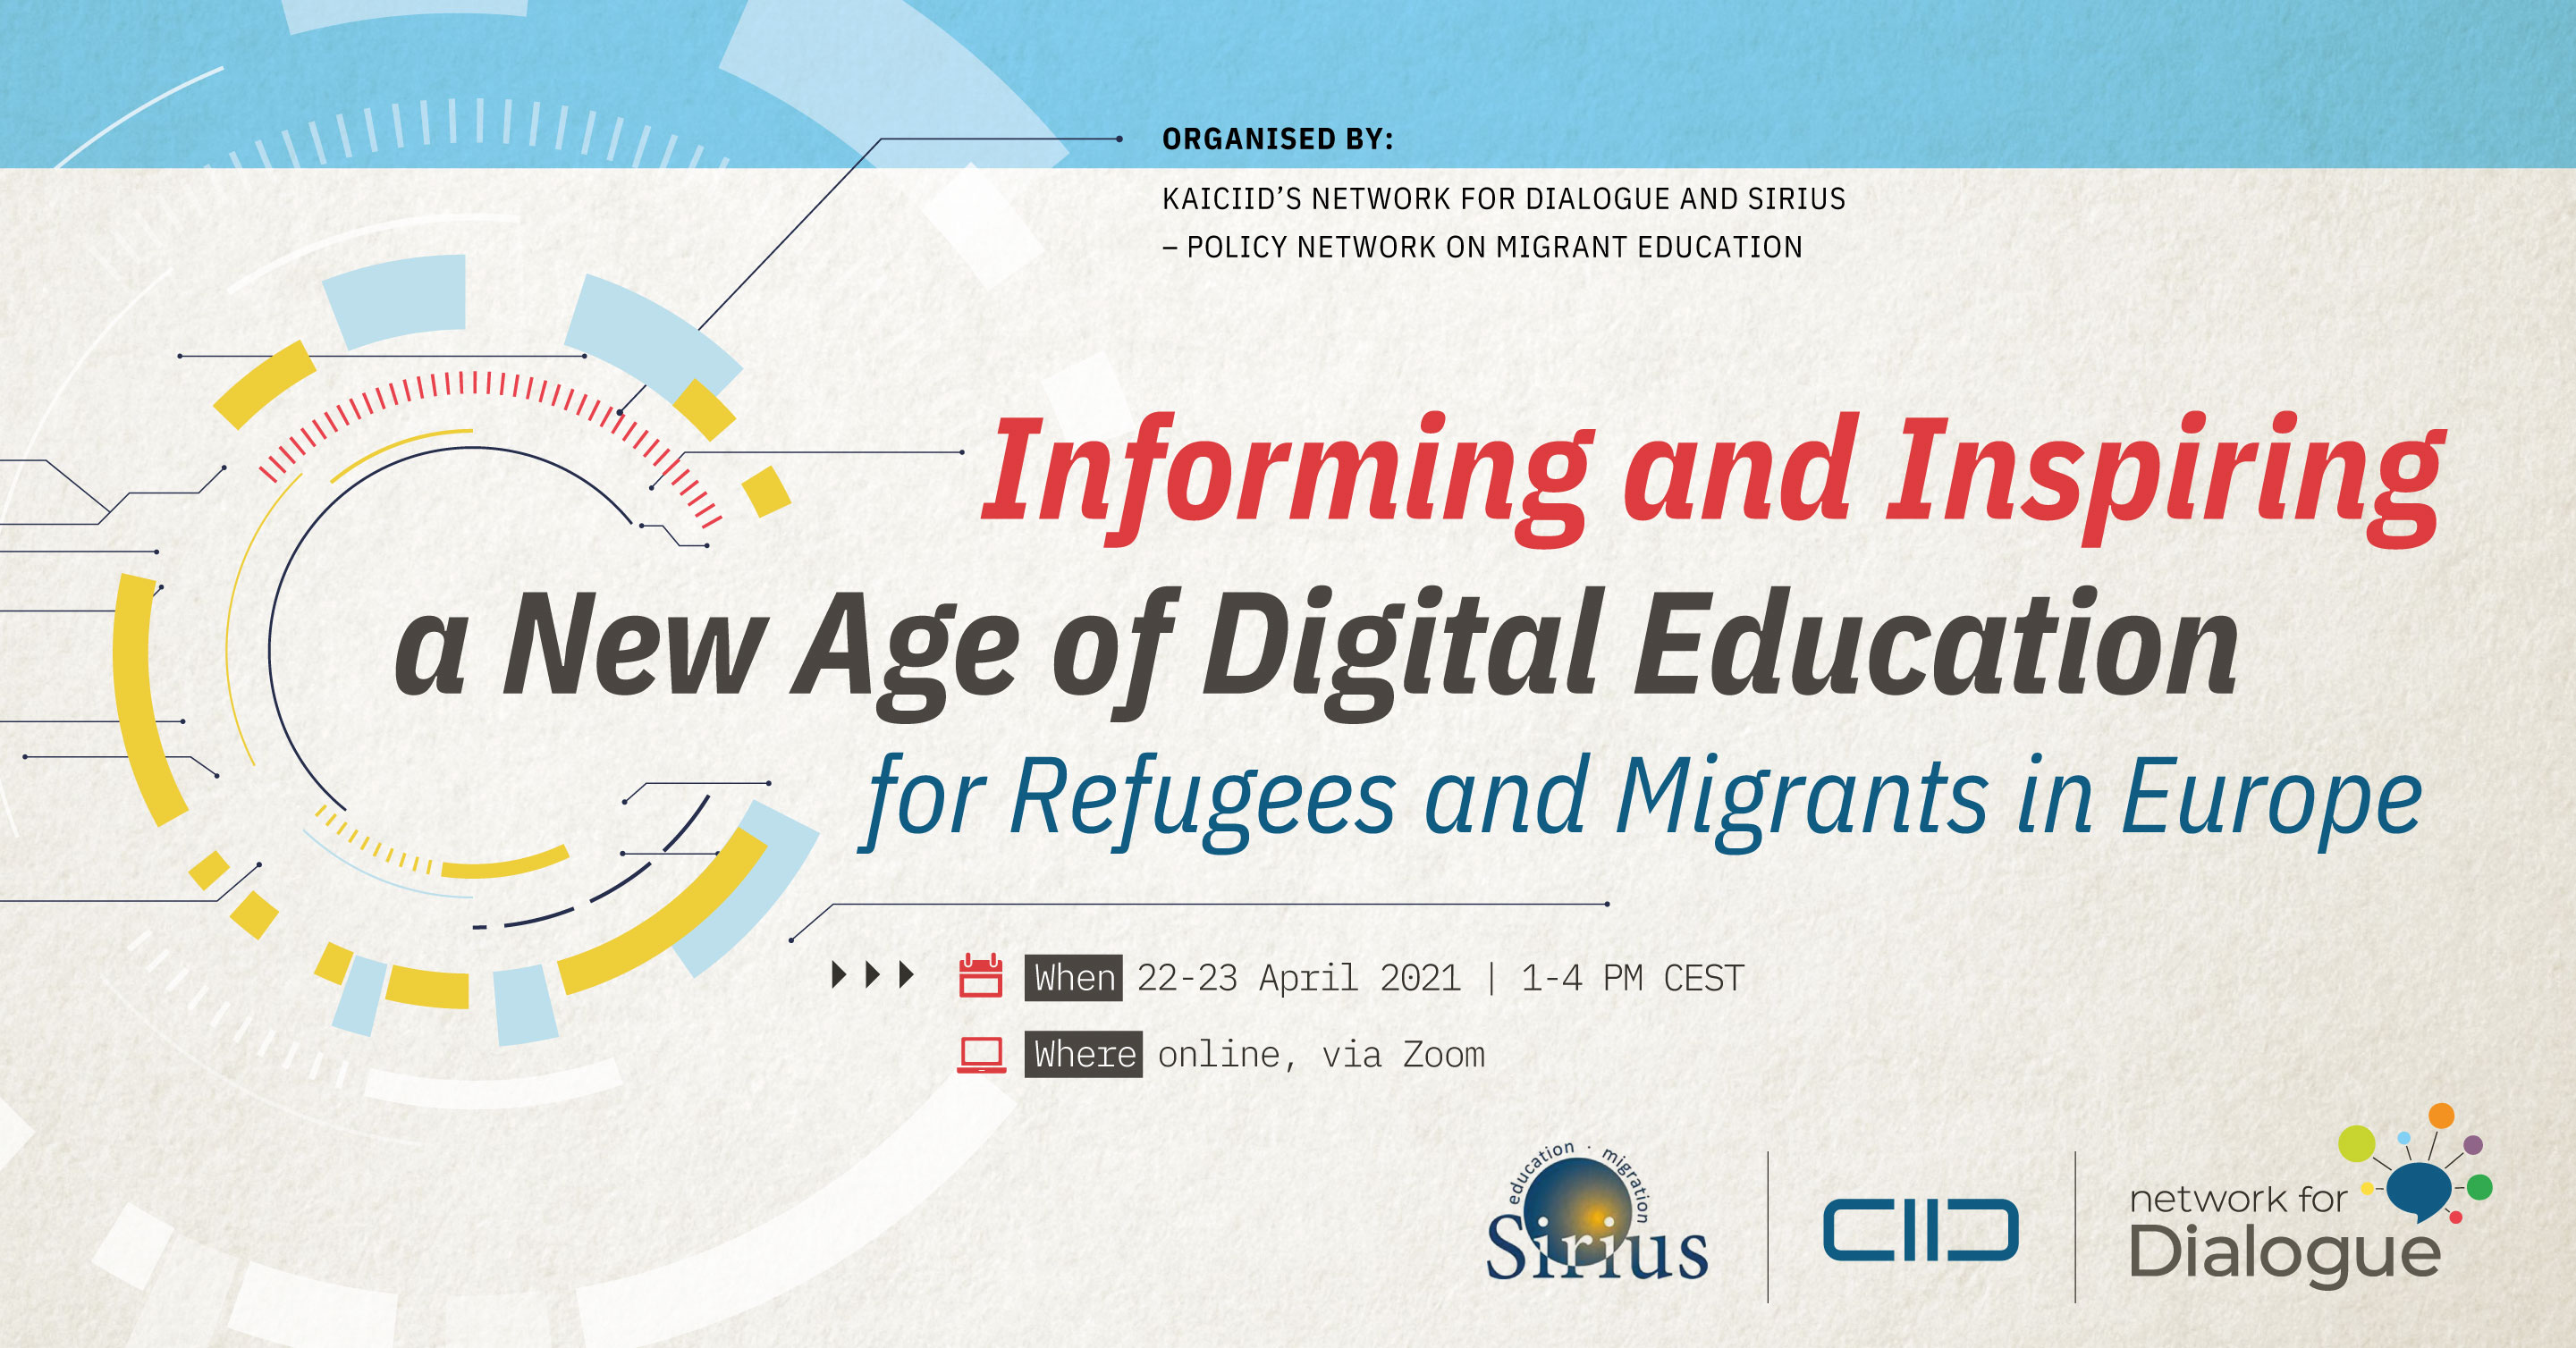 AIDING REFUGEES AND MIGRANTS THROUGH ACCESS TO E-LEARNING